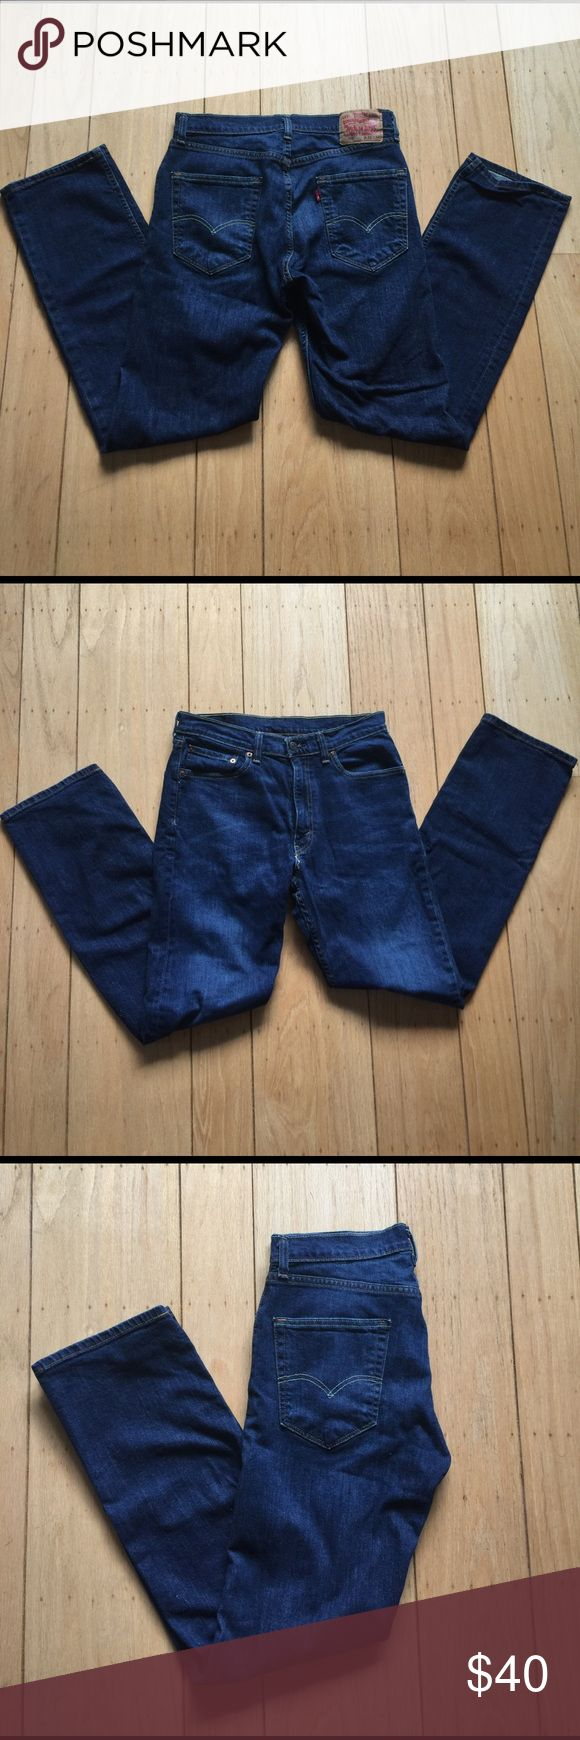 Men's Levi Jeans Men's 505 Levi Jeans. Size 32x32. Dark wash and in like new condition. Levi's Jeans Straight